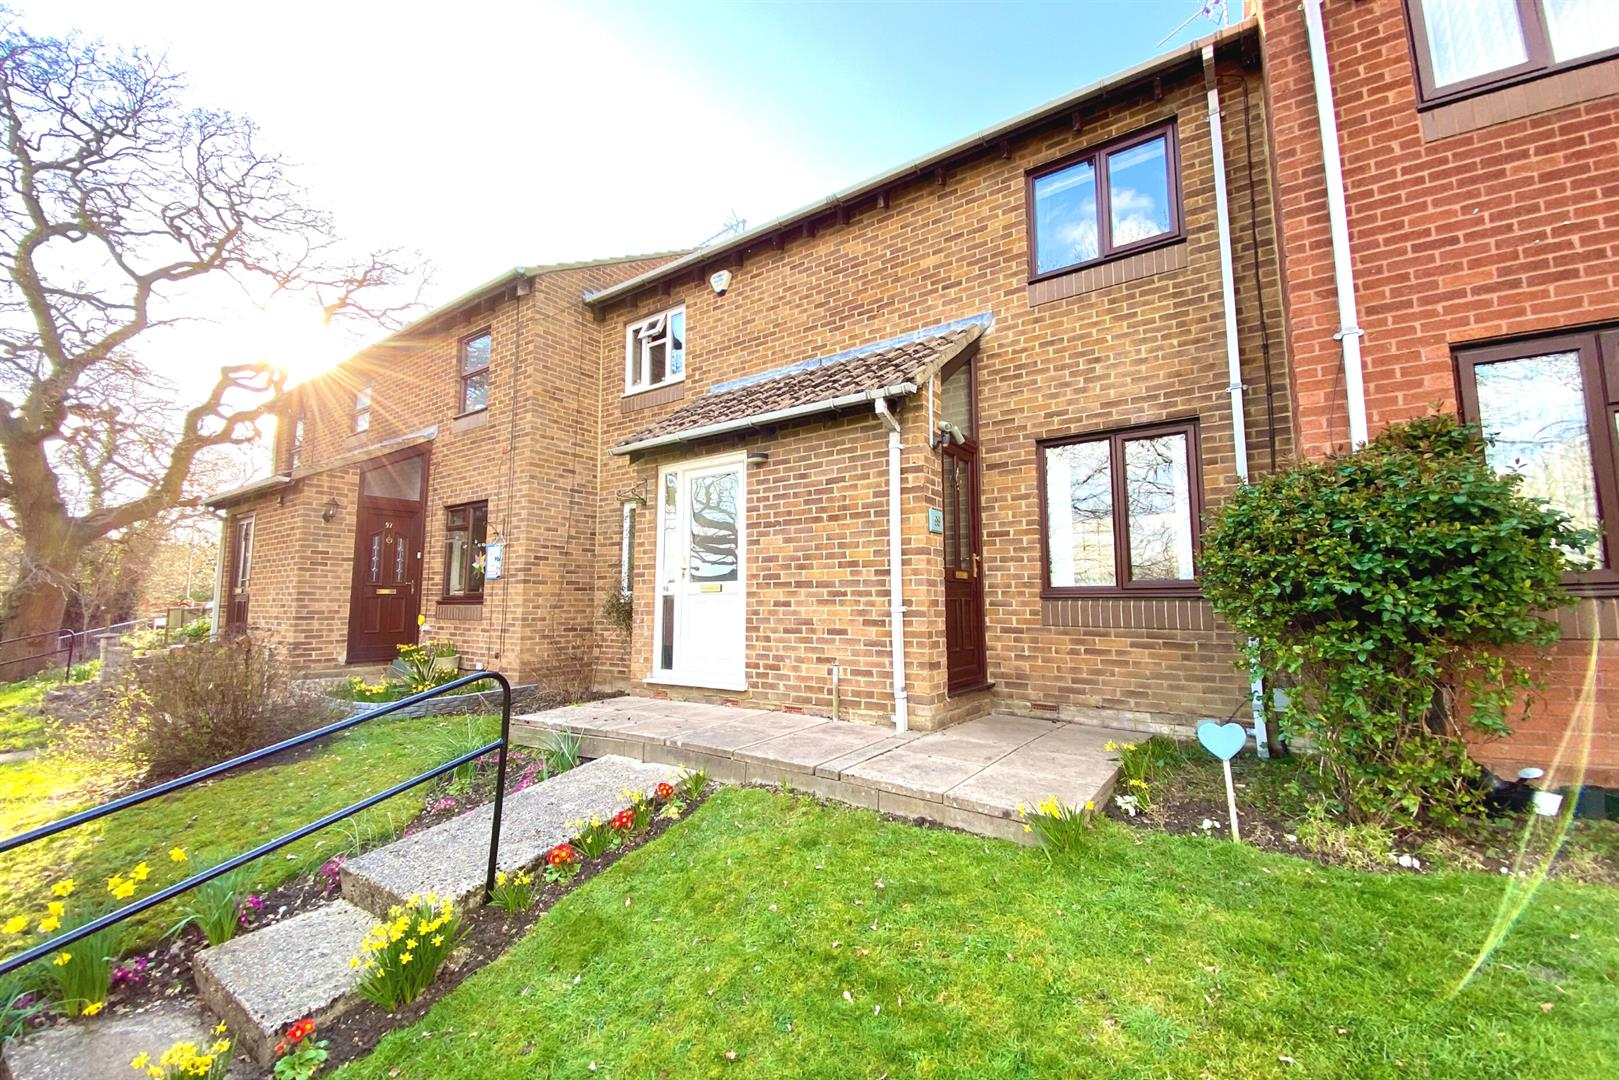 2 bed terraced for sale in Lower Earley, RG6